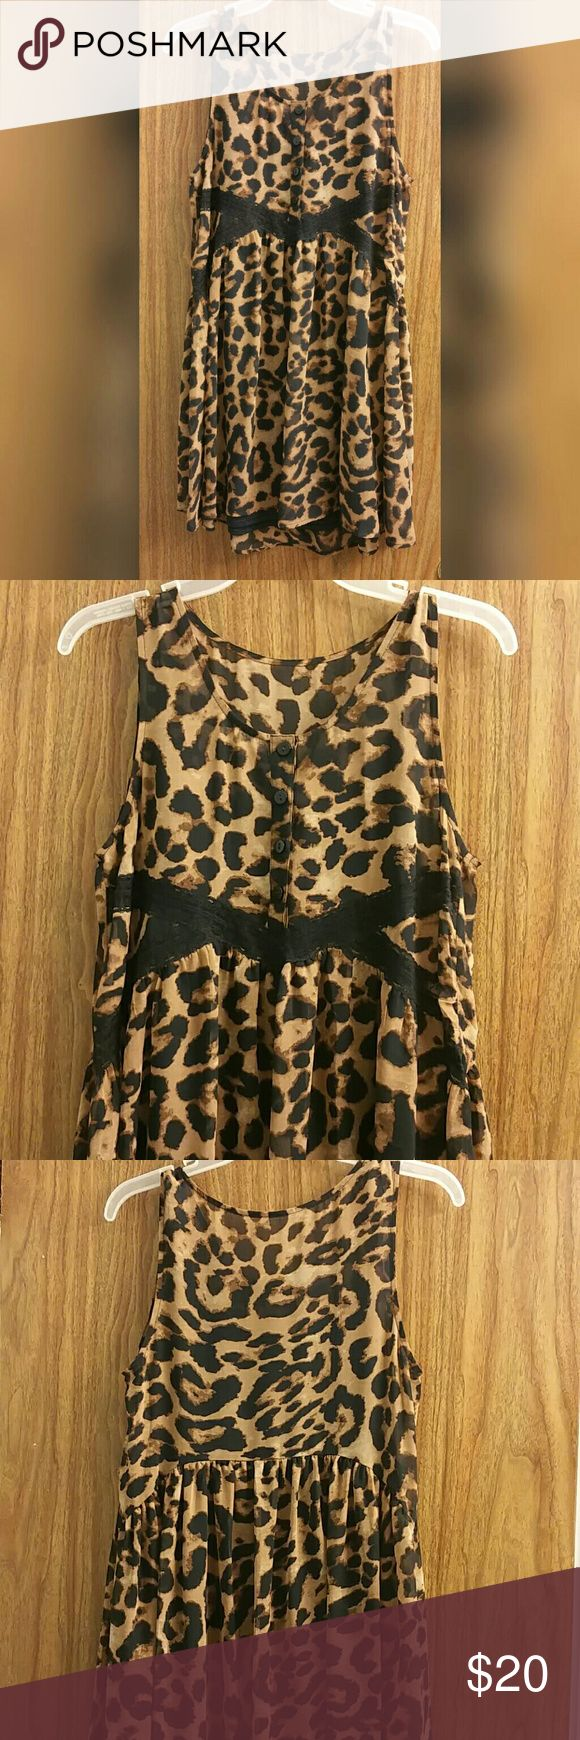 Express Leopard Print Dress Beautiful sheer polyester/rayon dress has black lace details along the sides, a gorgeous leopard skin print, and a book style fit to flatter any figure. Unavailable in stores, this beauty has been worn only once! Express Dresses